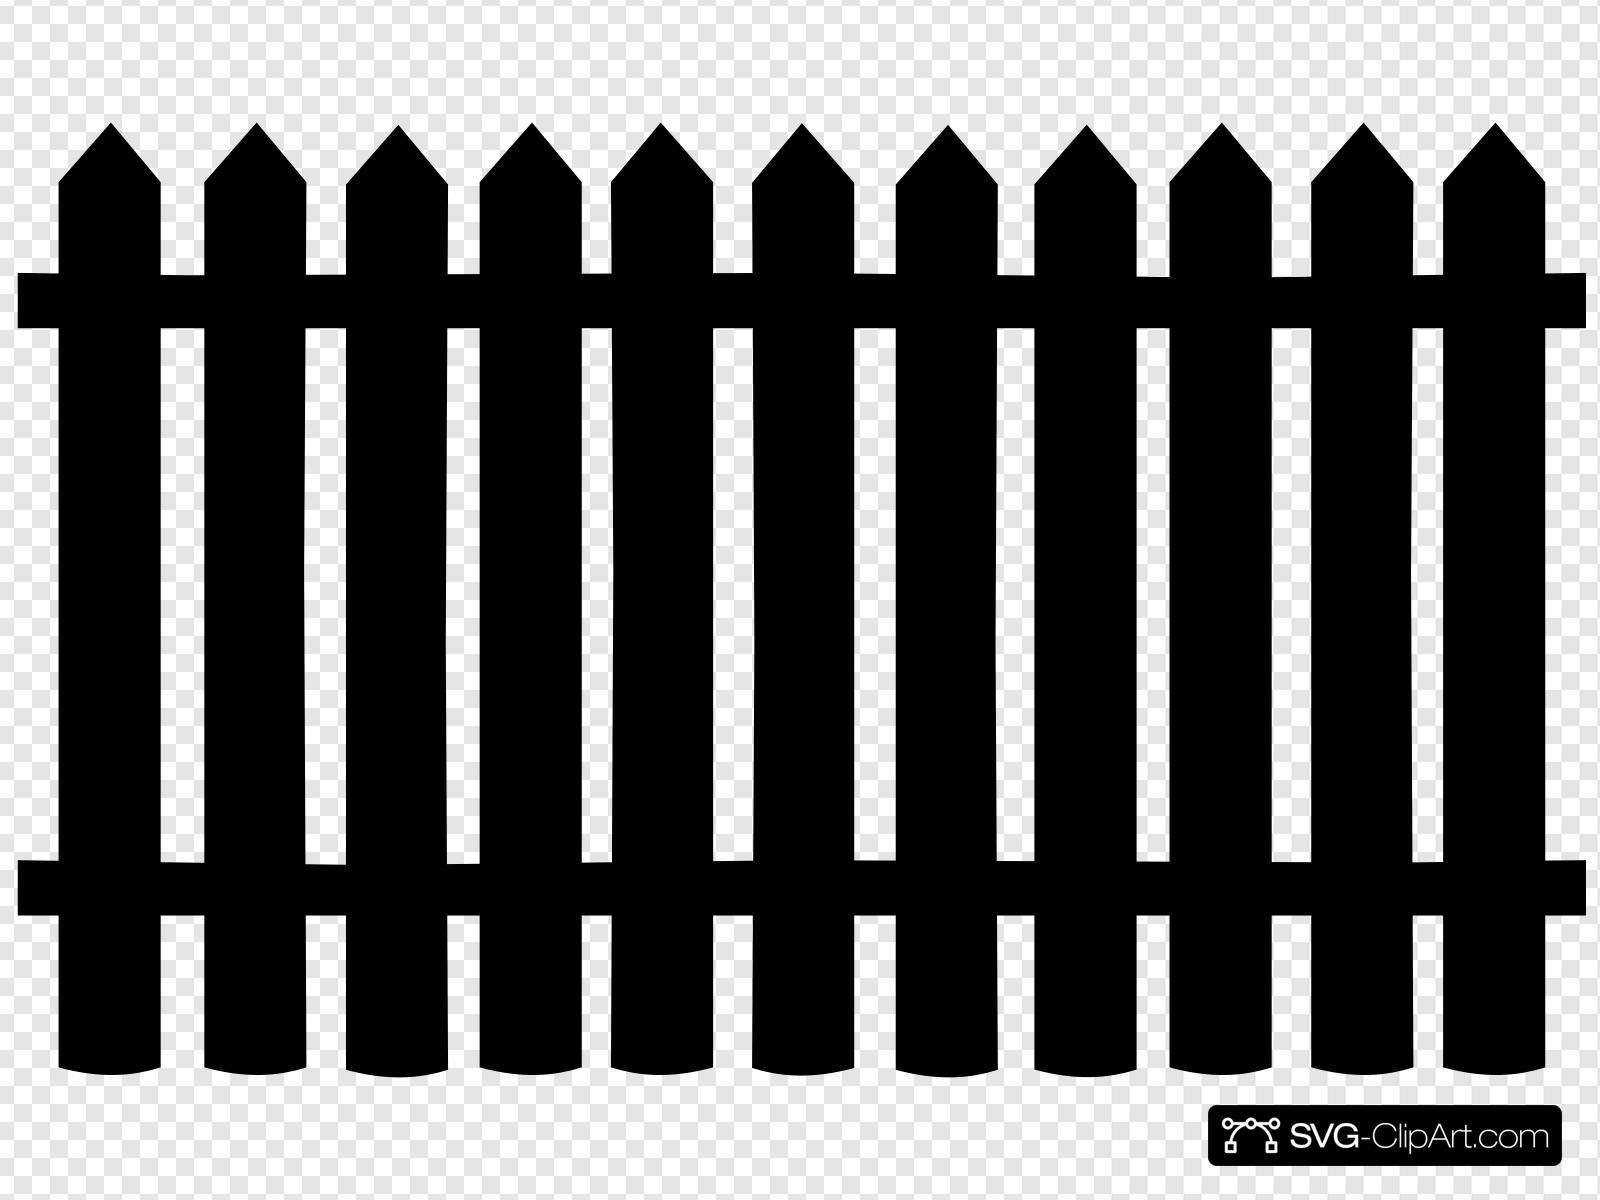 Fence clipart svg. Clip art icon and